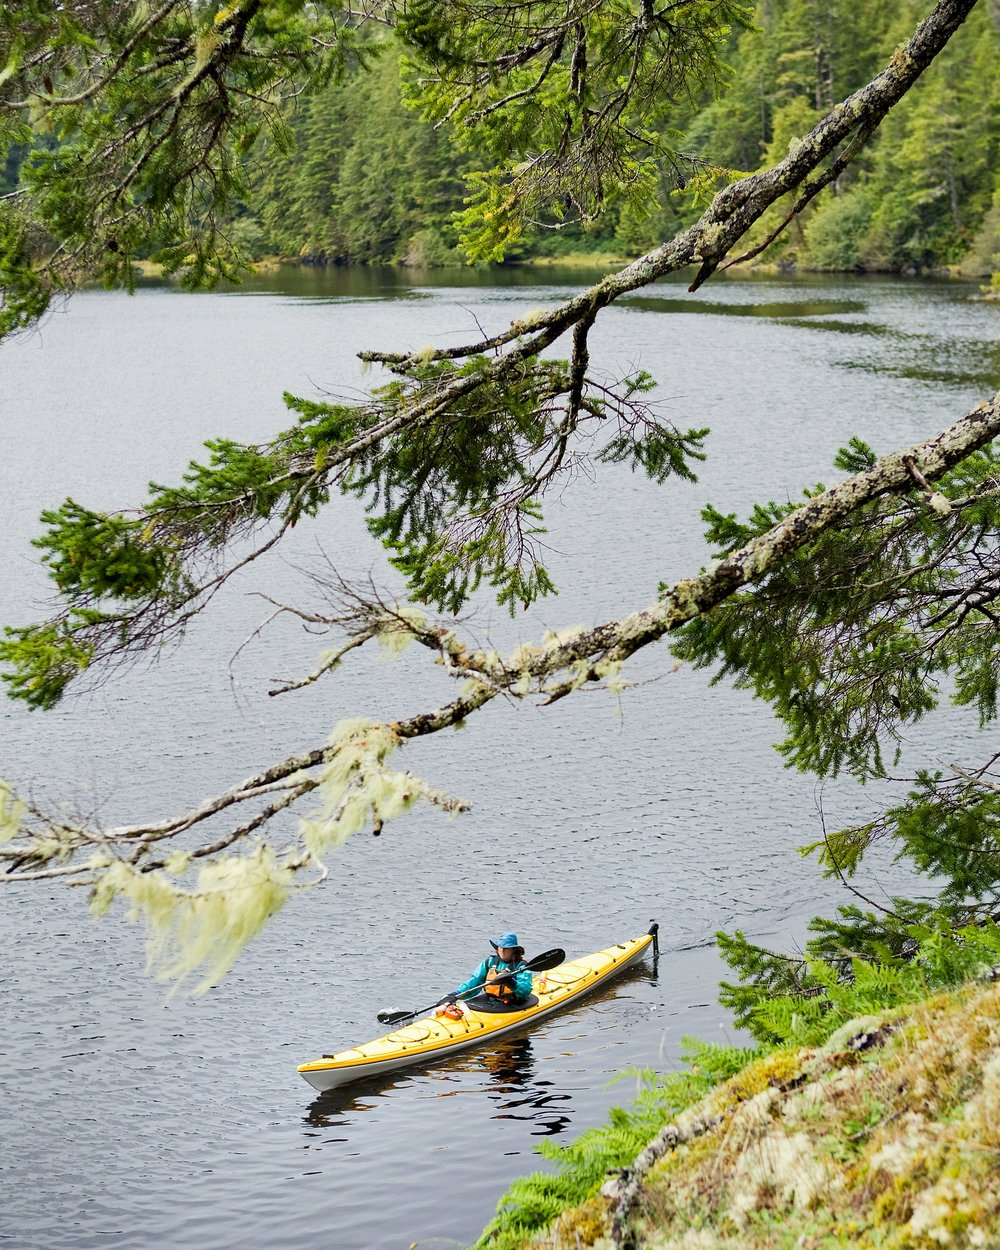 If you don't own a boat, you can still get out on the water this season. It can be relatively cheap. Slip into a kayak and explore. -